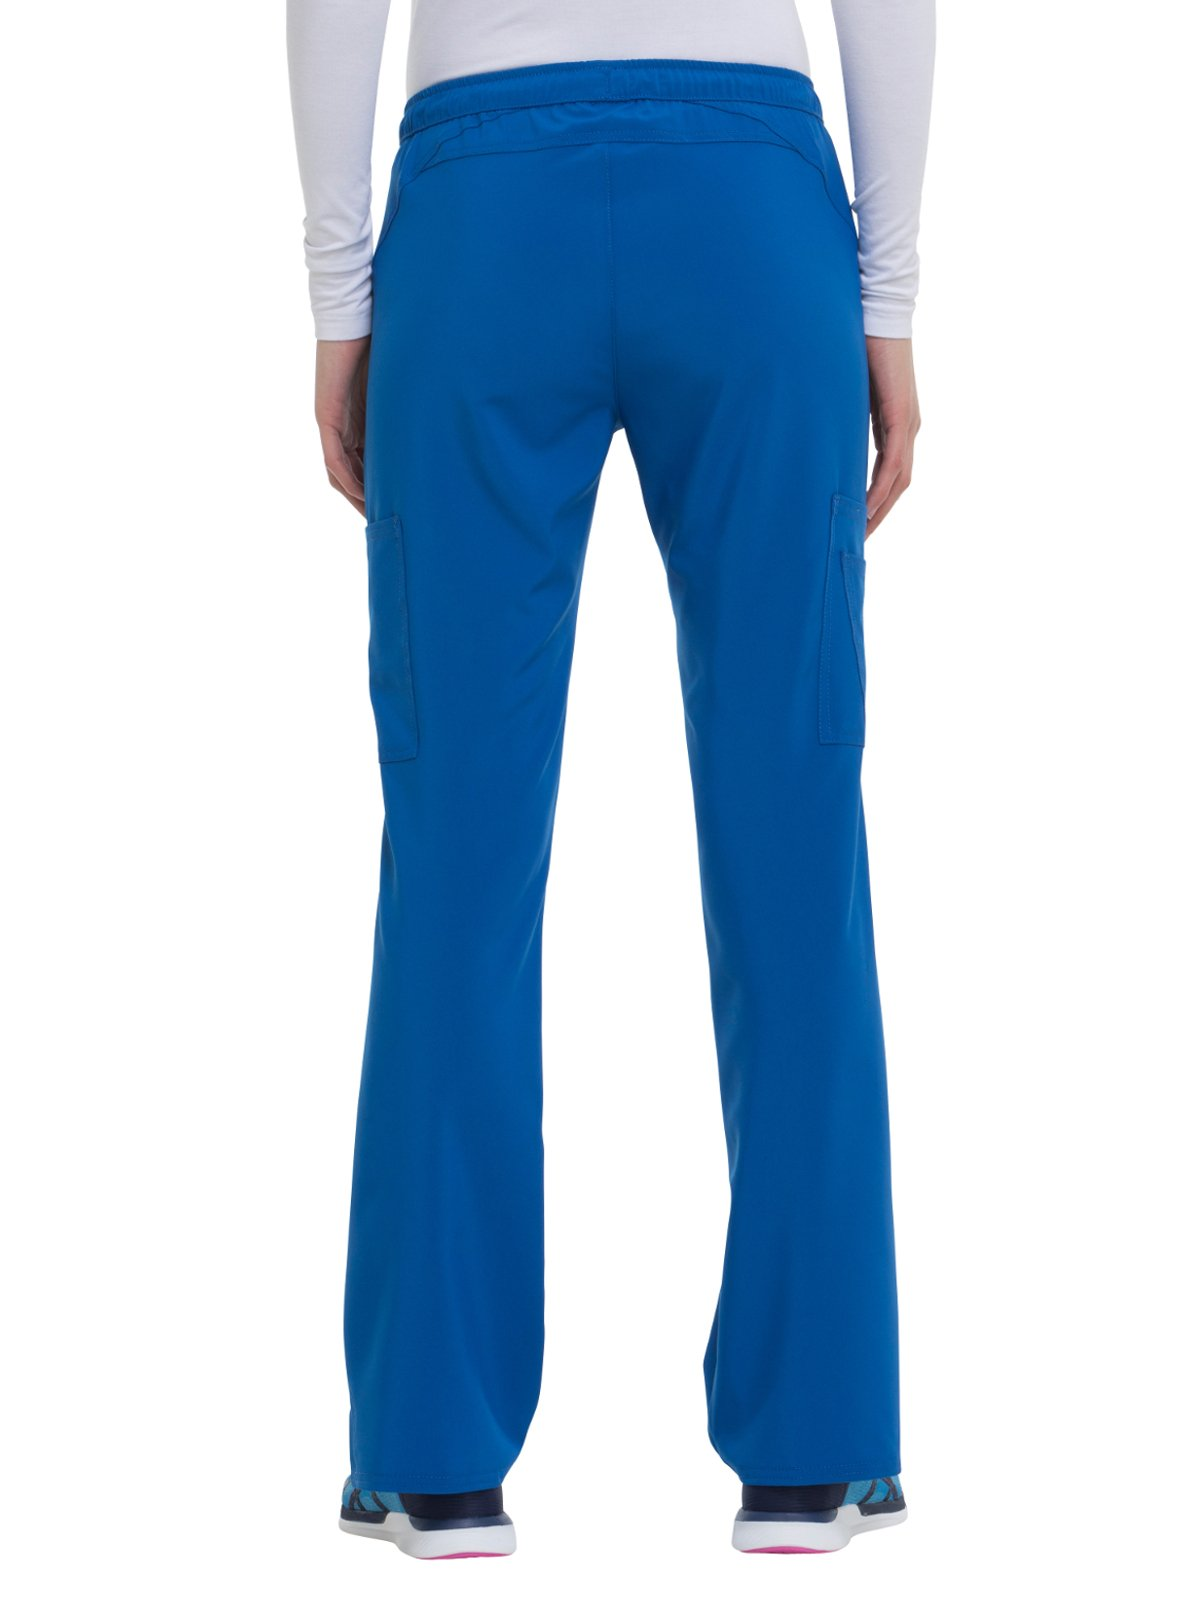 HeartSoul Love Always Women's Charmed Low Rise Drawstring Cargo Scrub Pant Small Royal by HeartSoul (Image #2)